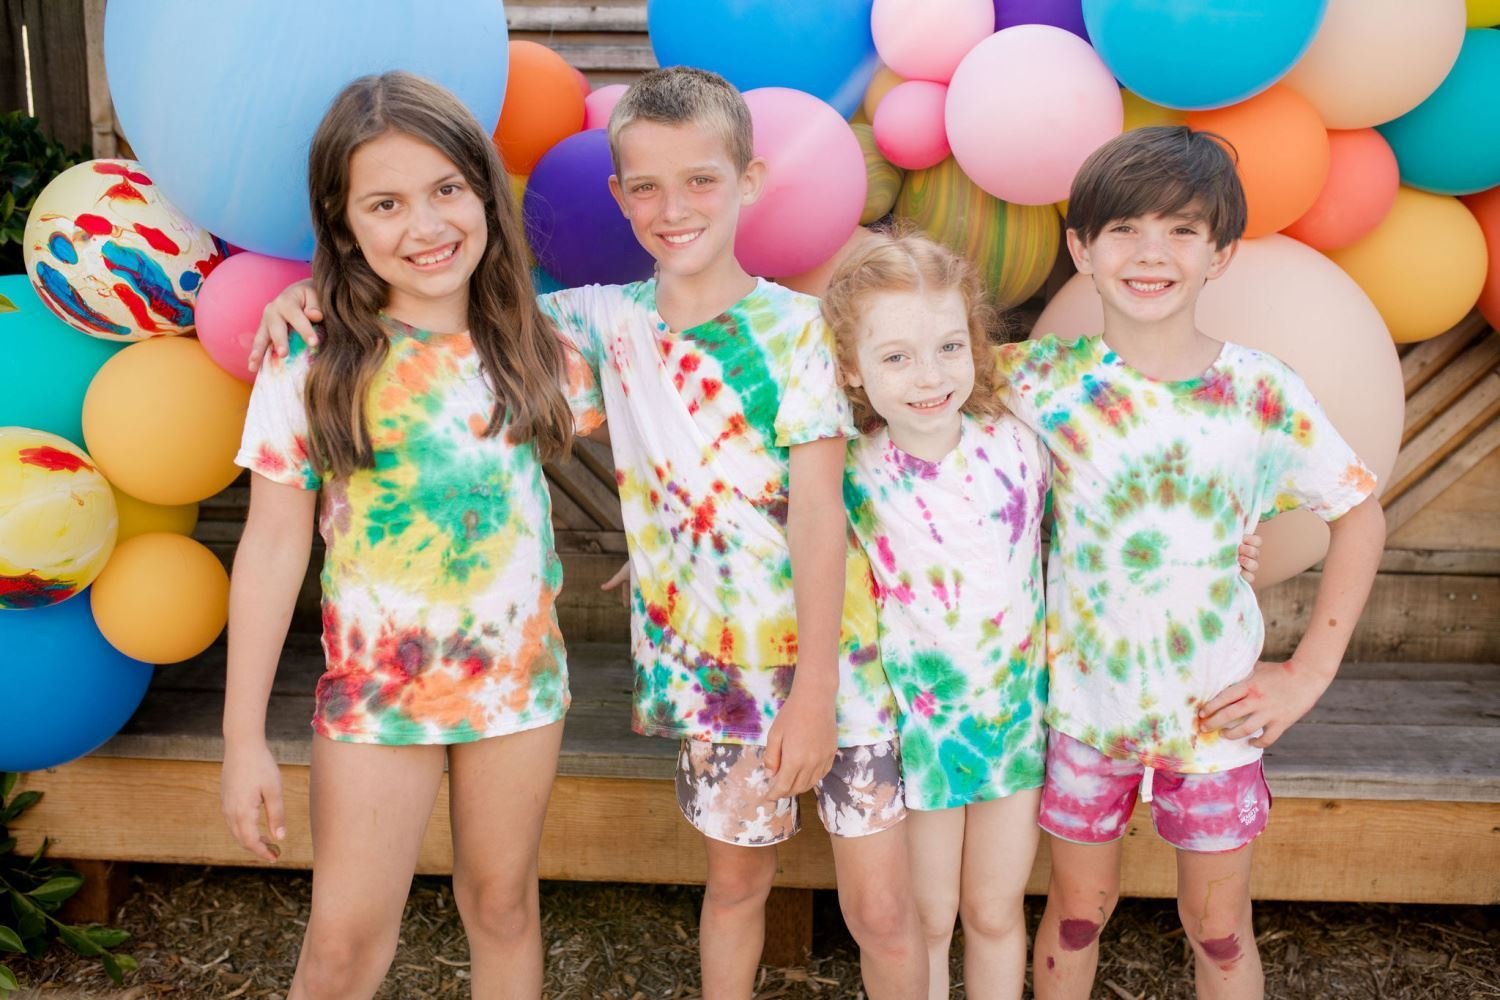 Use balloons as a colorful tie-dye party photo backdrop